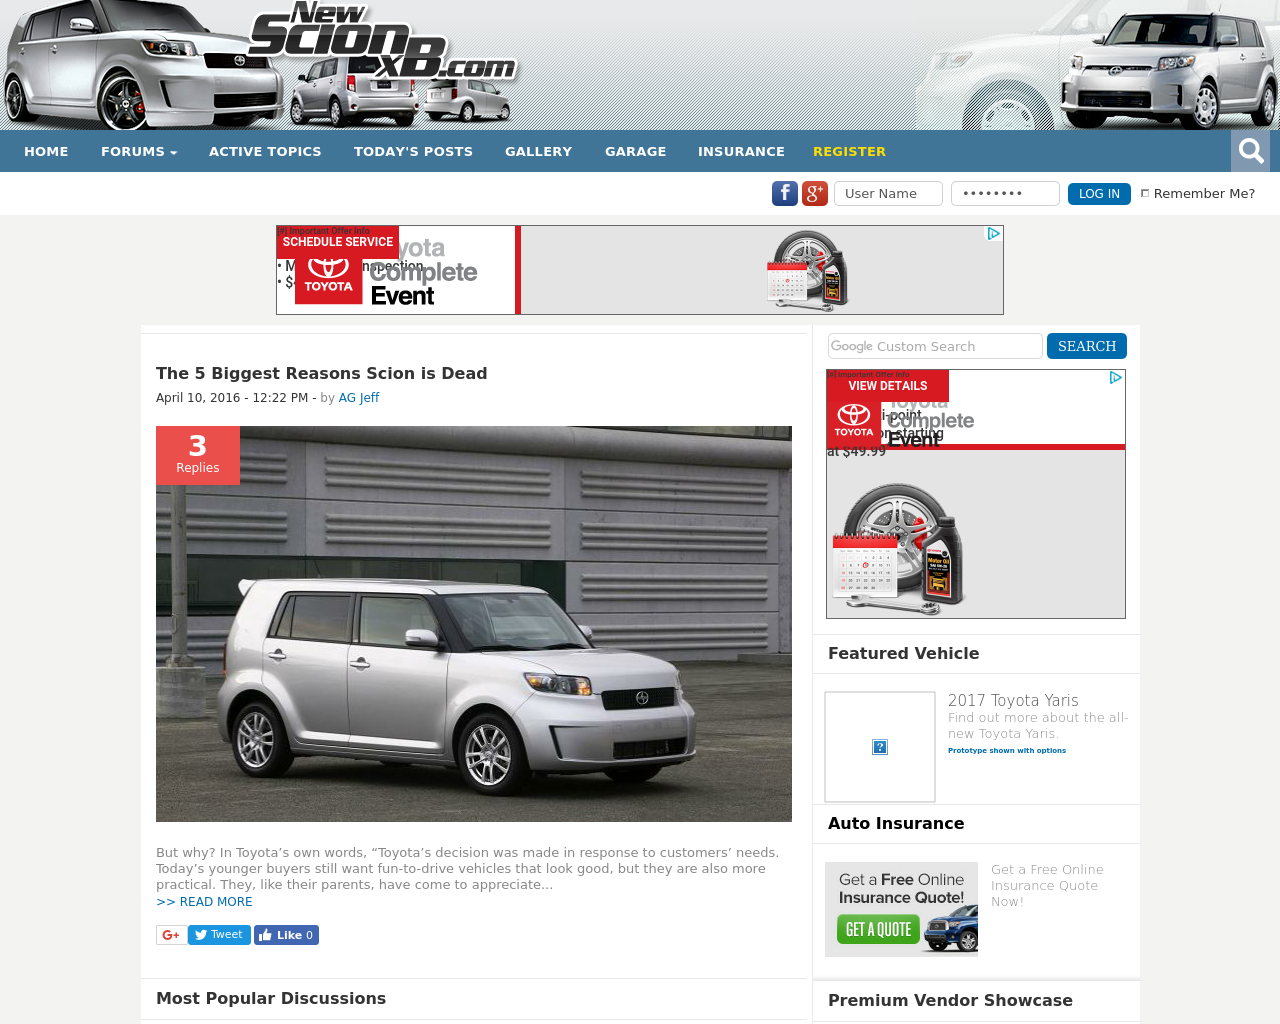 Scion-XB-Forum-Advertising-Reviews-Pricing